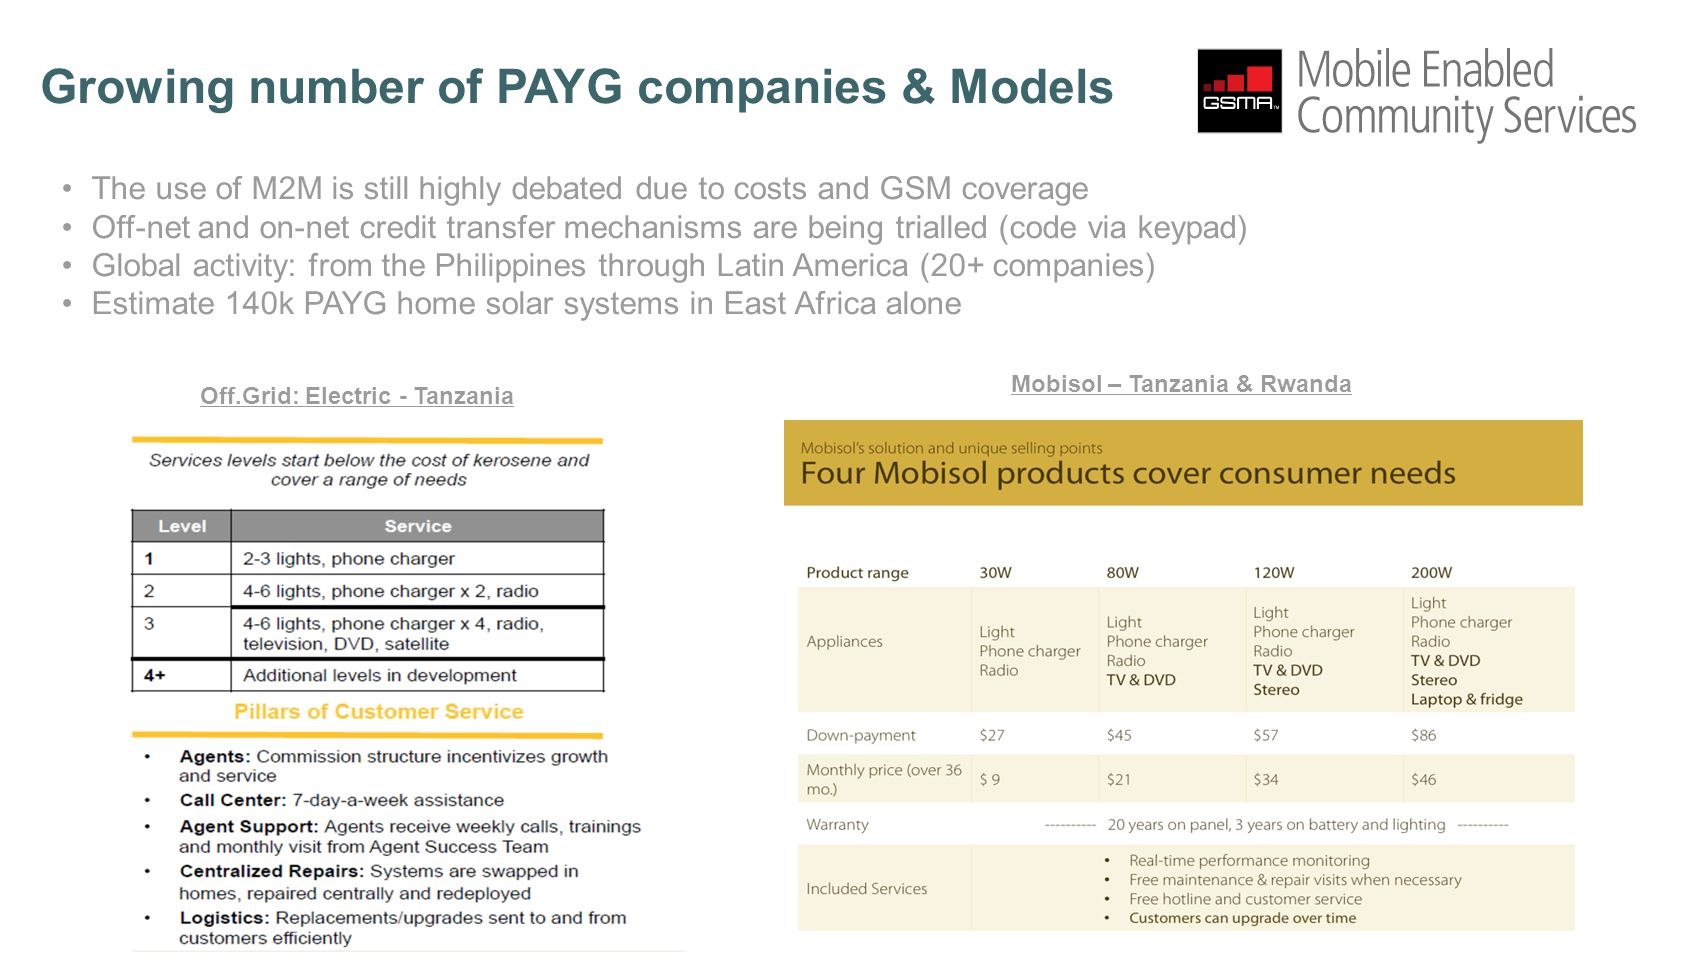 Growing number of PAYG companies & Models The use of M2M is still highly debated due to costs and GSM coverage Off-net and on-net credit transfer mechanisms are being trialled (code via keypad) Global activity: from the Philippines through Latin America (20+ companies) Estimate 140k PAYG home solar systems in East Africa alone Off.Grid: Electric - Tanzania Mobisol – Tanzania & Rwanda